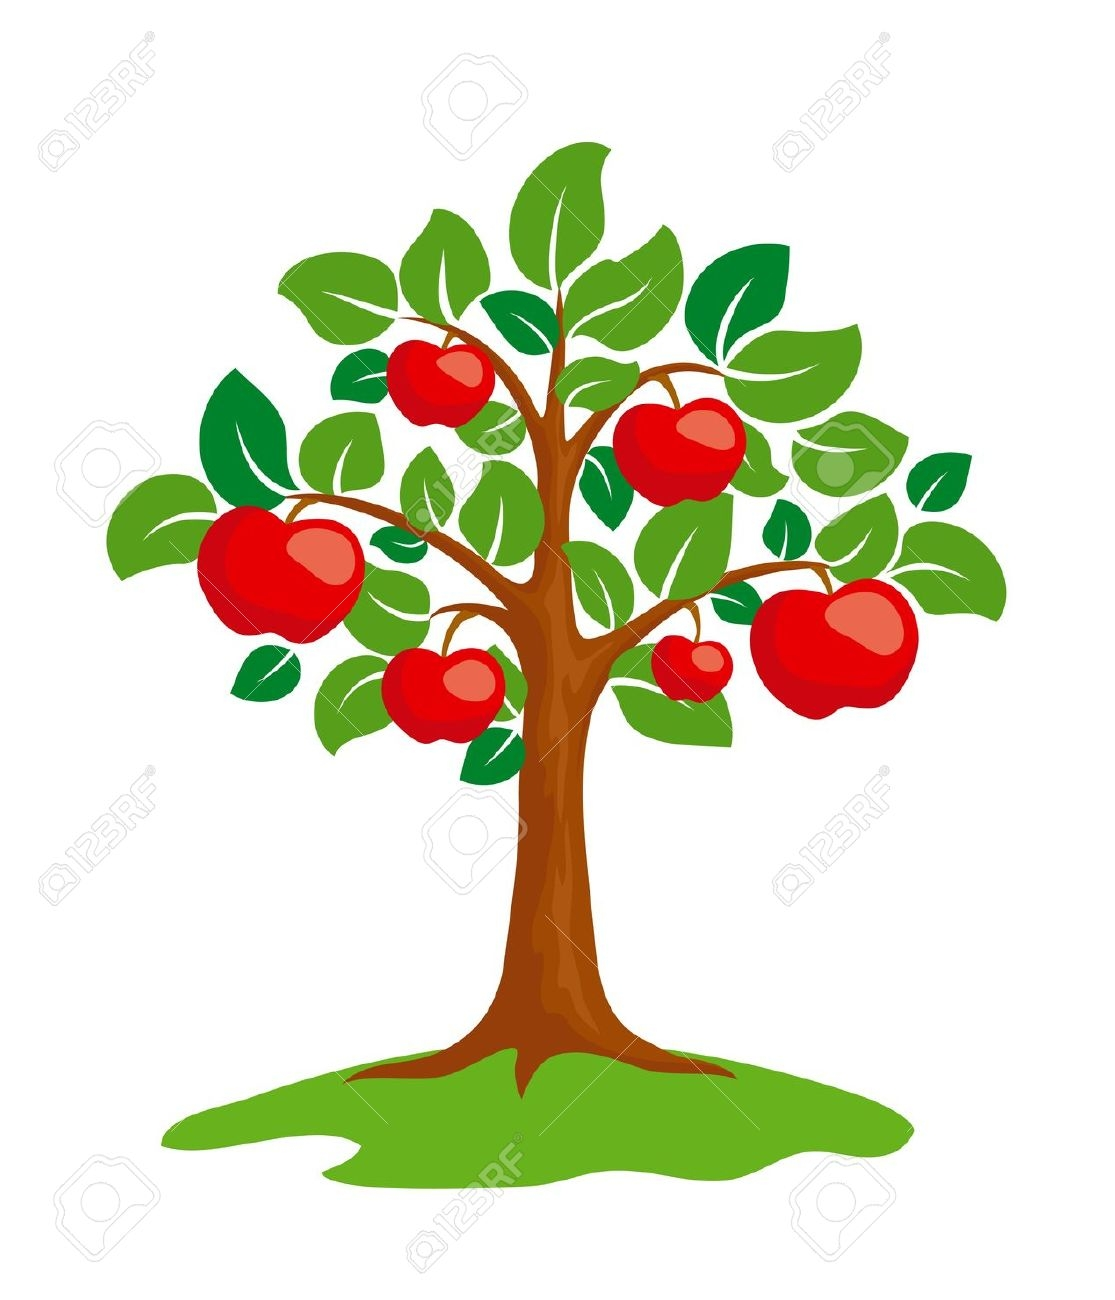 apple tree: Stylized